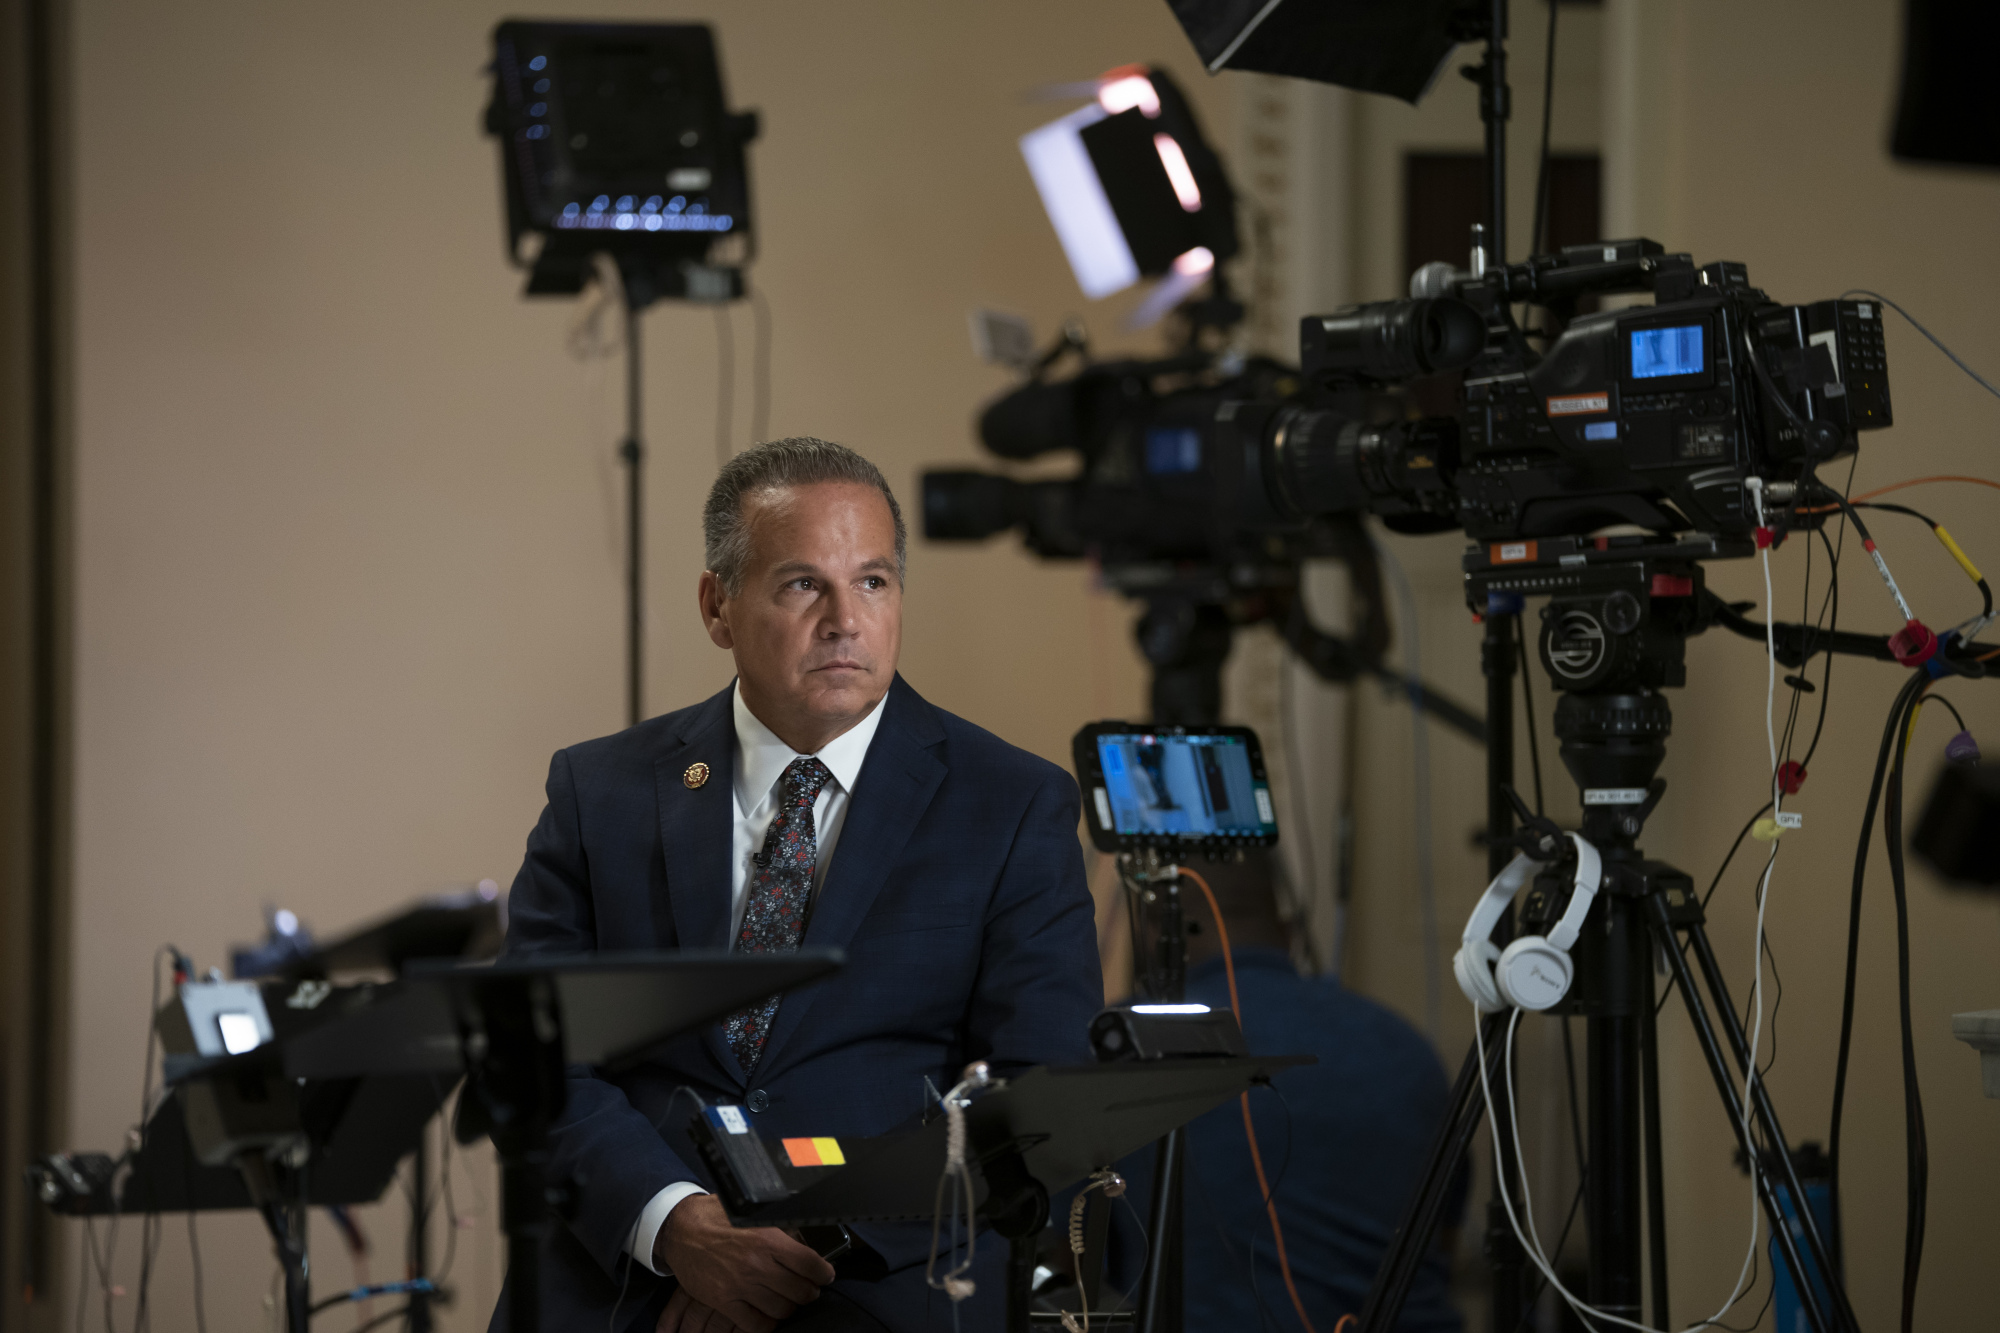 Rep. David Cicilline, D-R.I., pauses during a television news interview at the Capitol in Washington Tuesday. Cicilline is the chairman of the House Judiciary Subcommittee on Antitrust, Commercial and Administrative Law and is a key figure in the debate over whether technology giants like Facebook and Google should be broken up. | AP